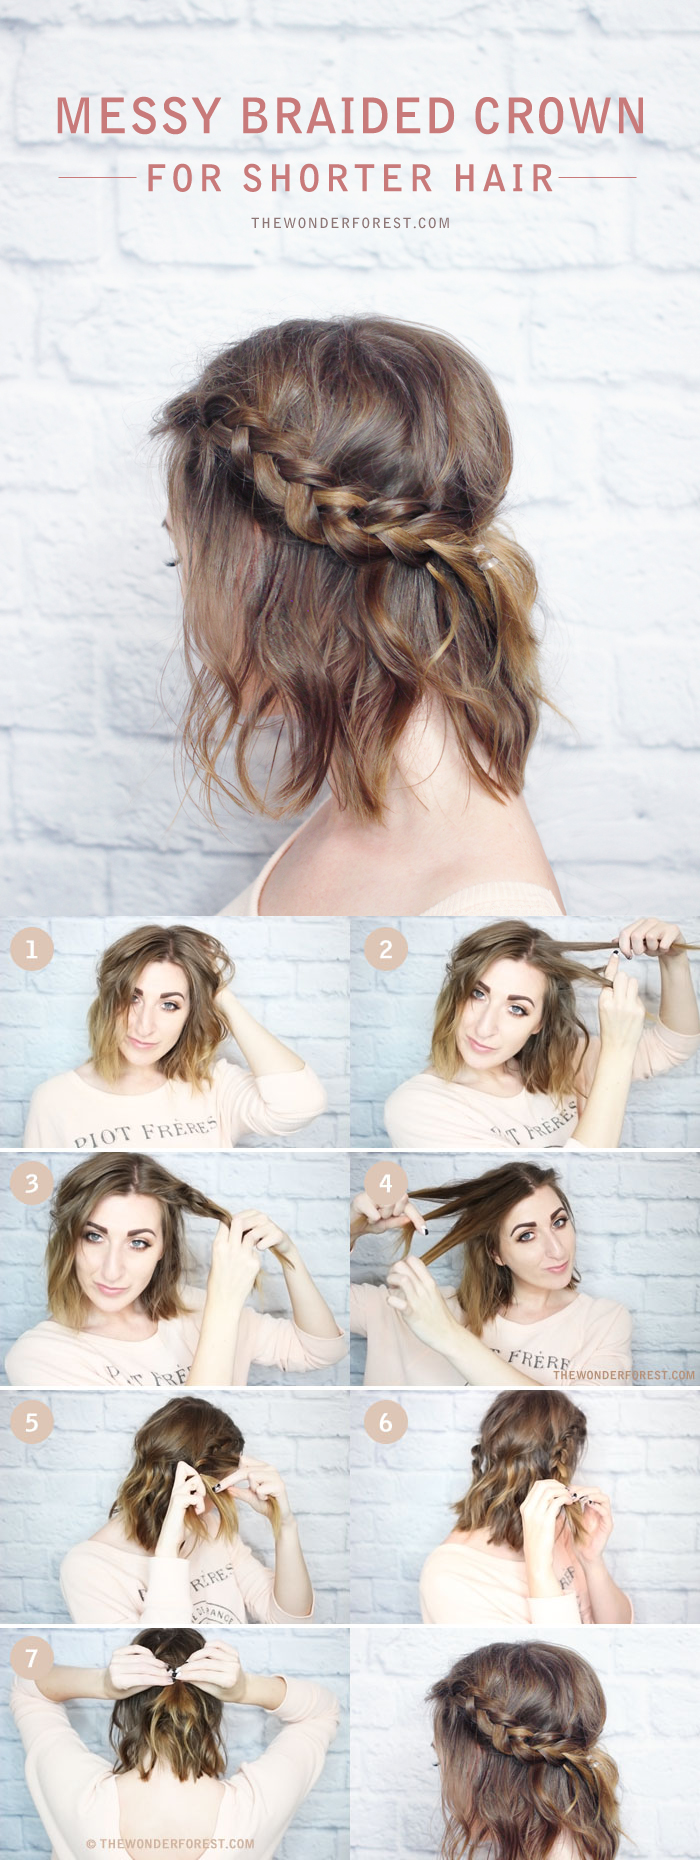 diy hairstyles | messy braided crown for shorter hair | step-by